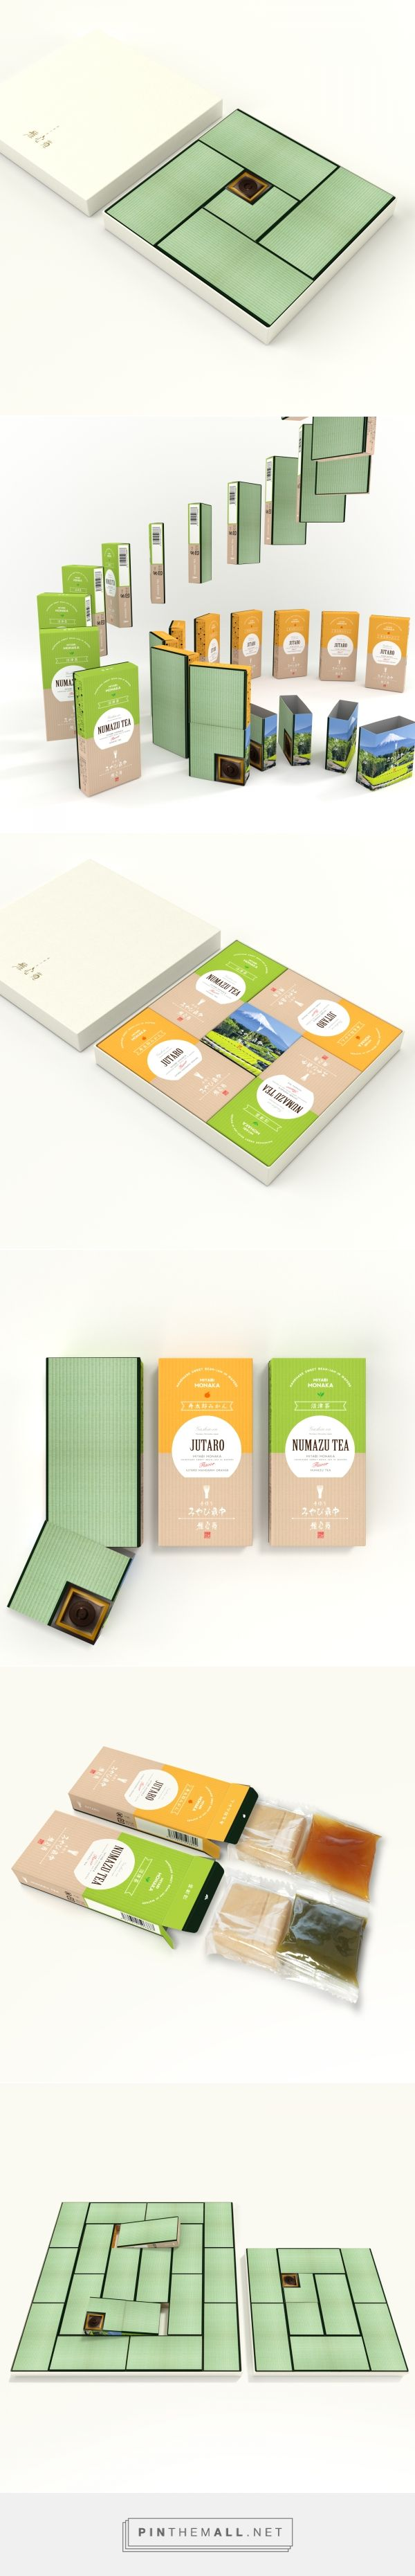 Miyabi Monaka - Packaging of the World - Creative Package Design Gallery - http://www.packagingoftheworld.com/2017/11/miyabi-monaka.html